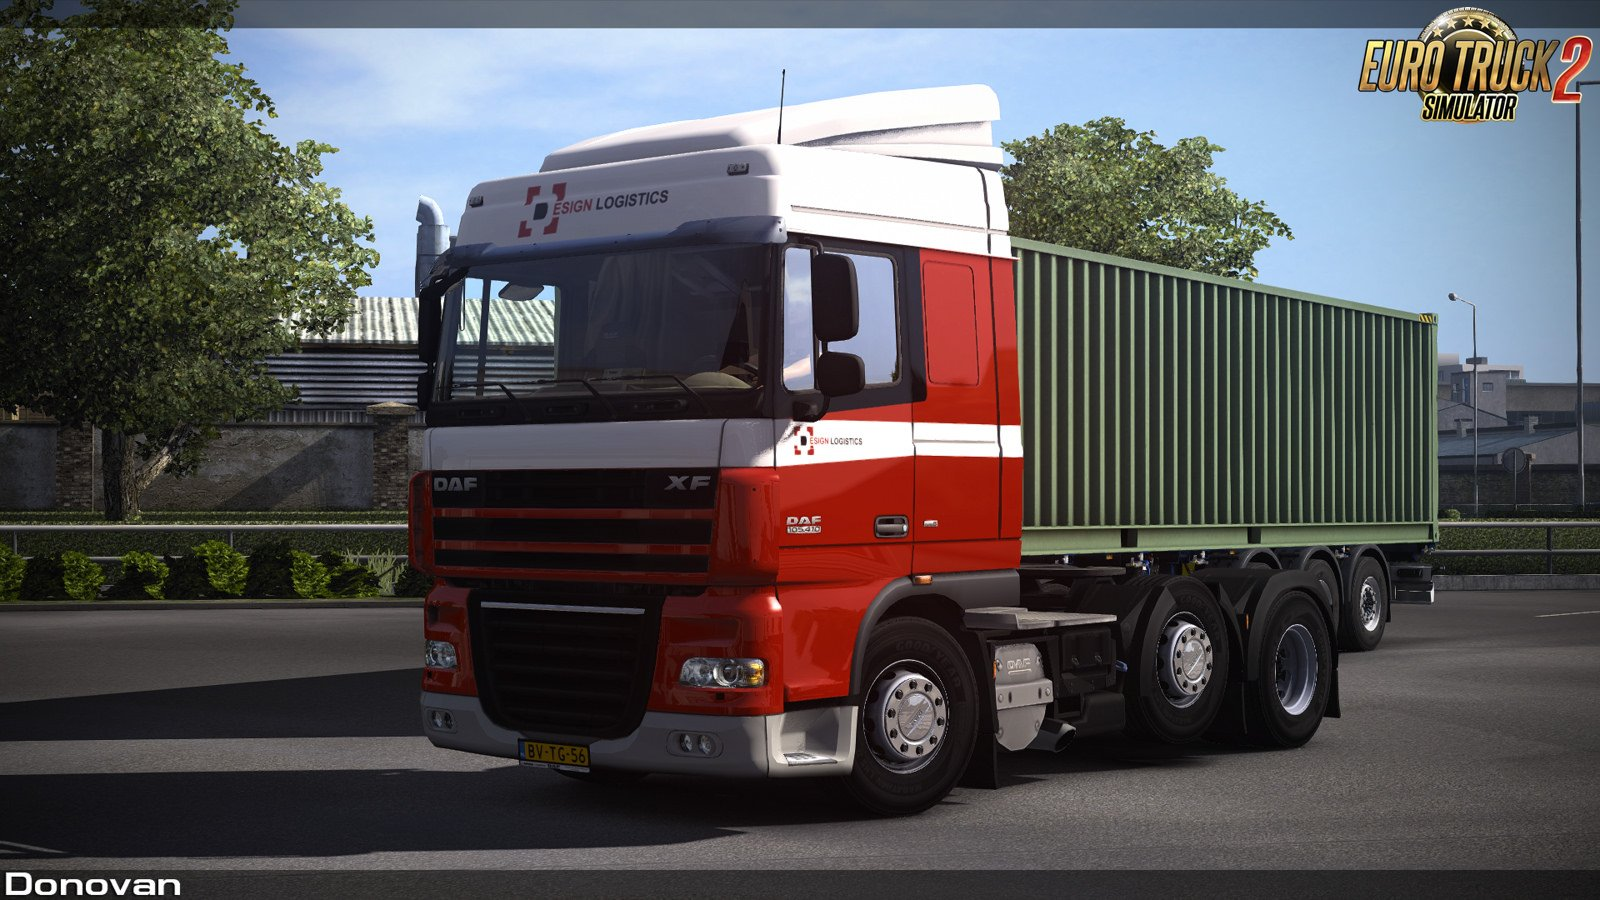 Design Logistics Skin for DAF XF 105 by Vadik [1.32.x]